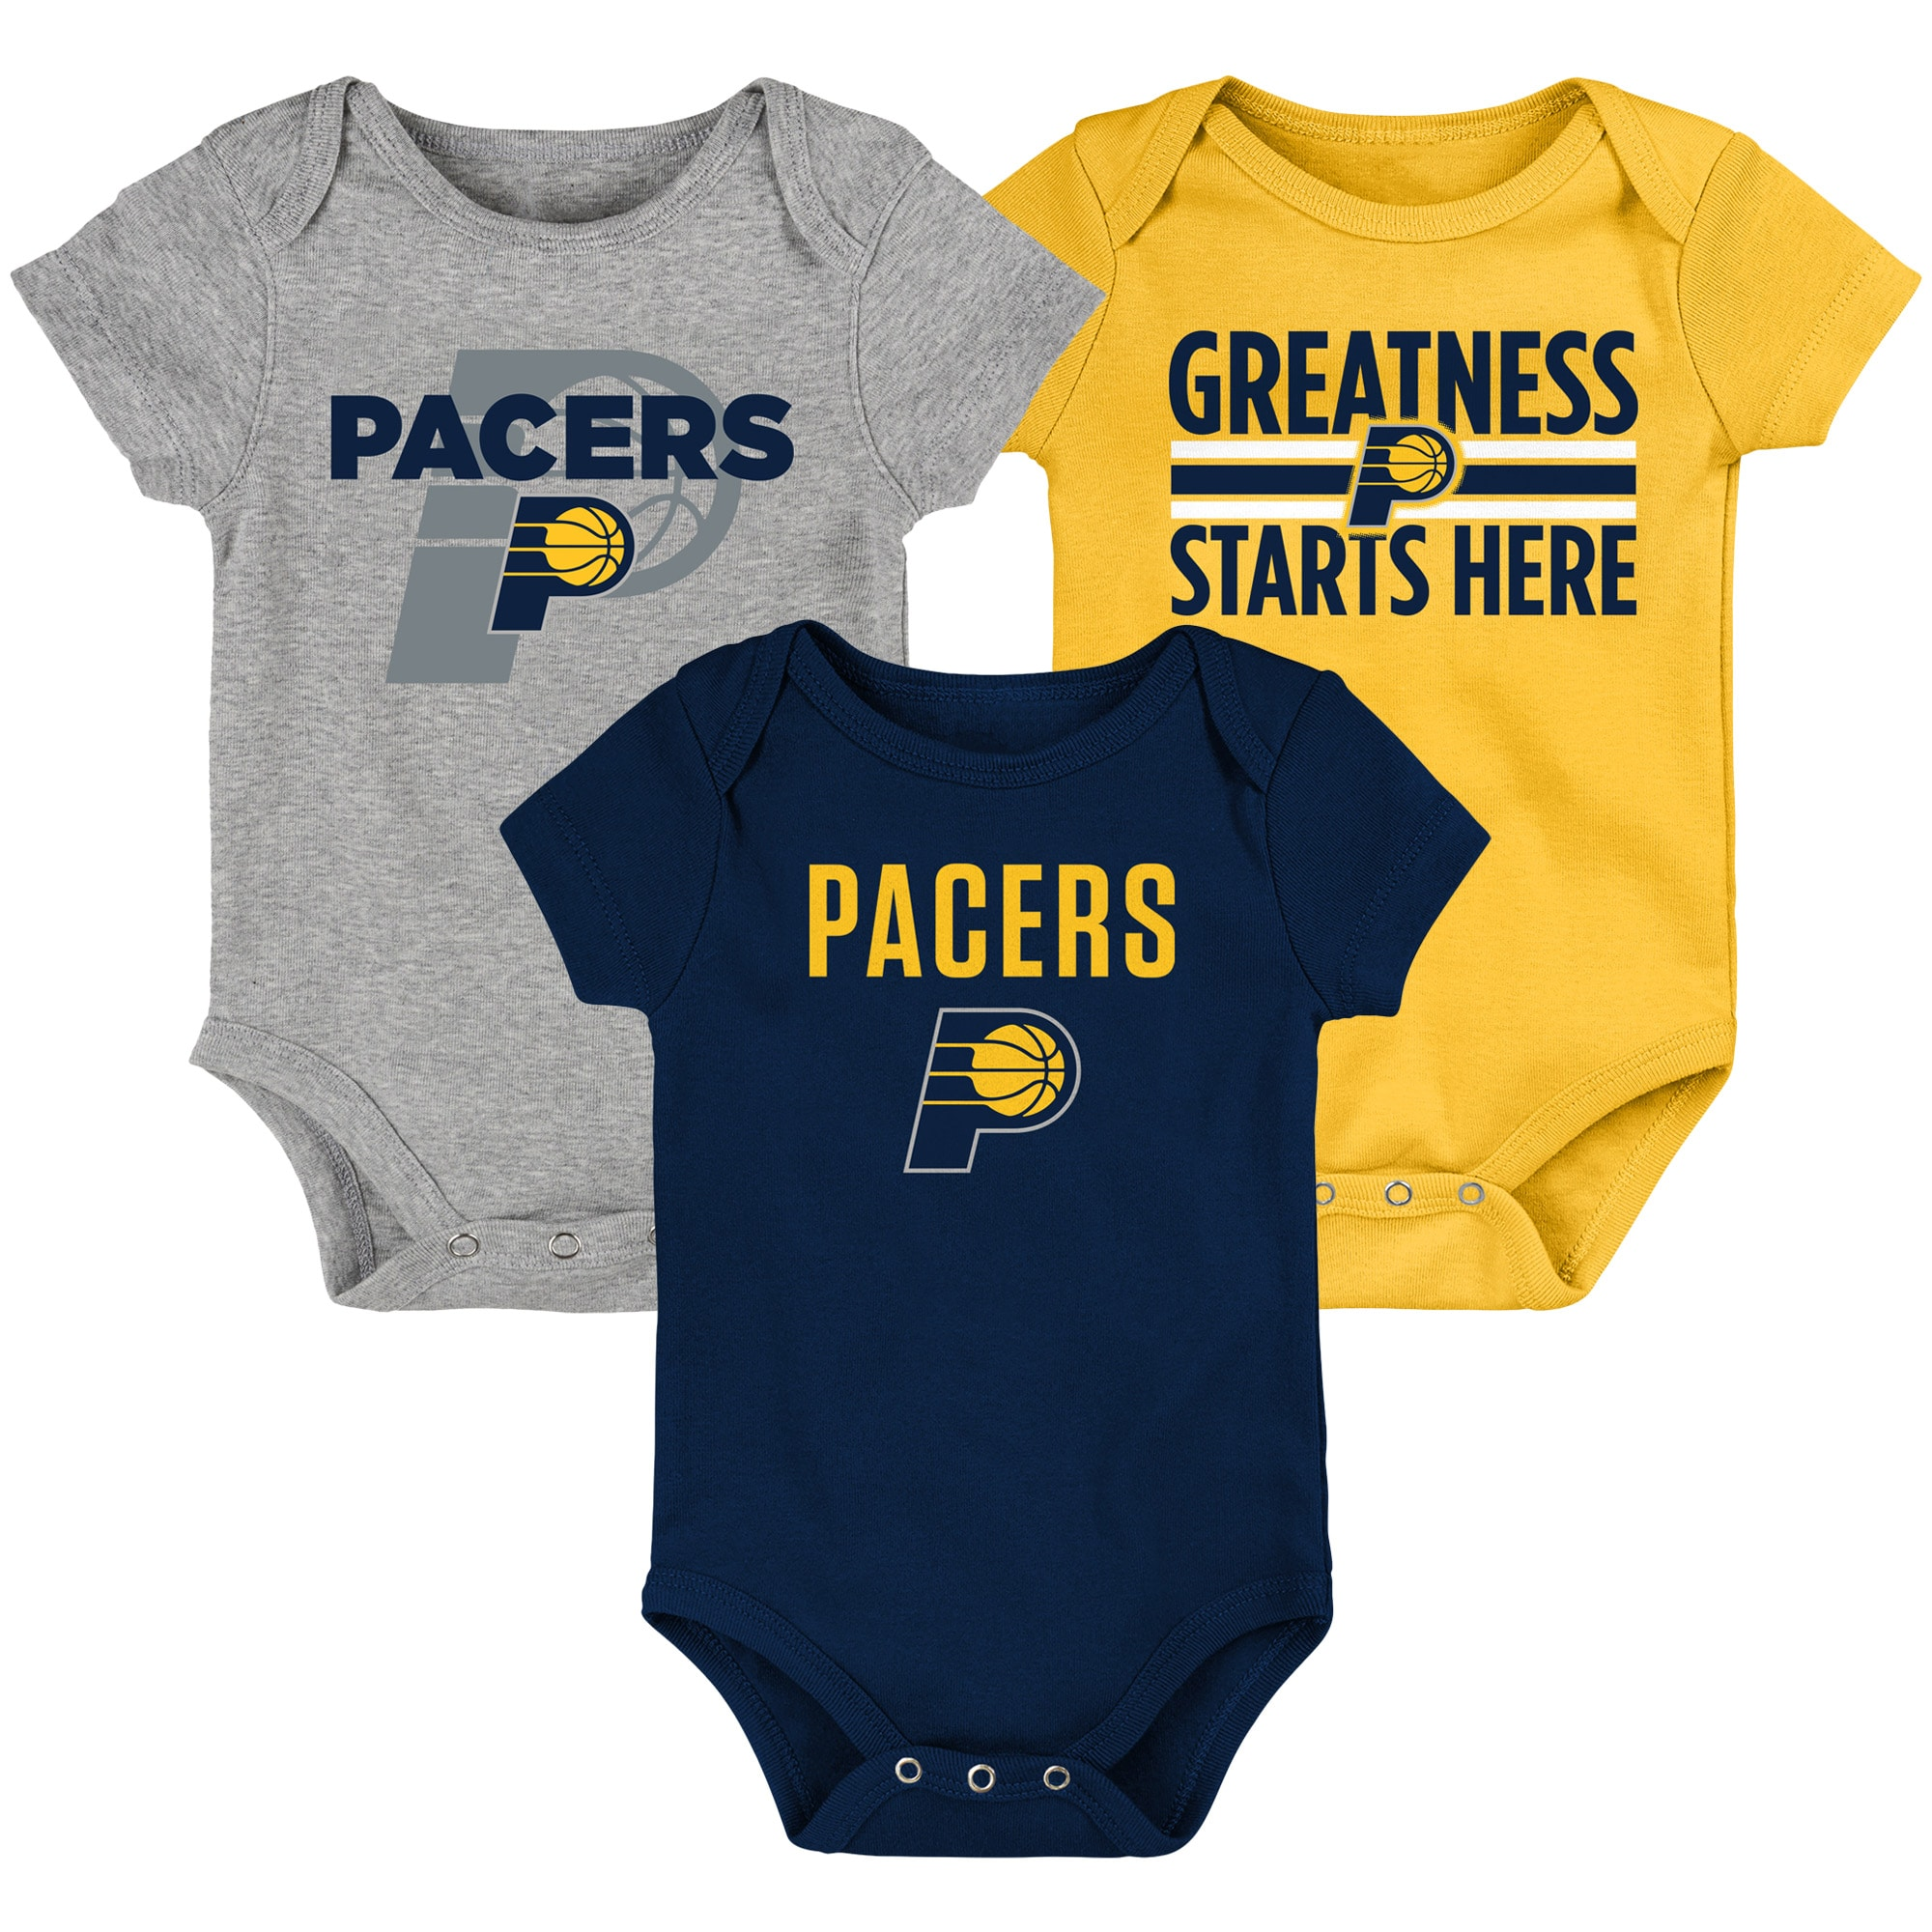 Indiana Pacers Newborn & Infant Three-Pack Bodysuit Set - Navy/Gold/Gray